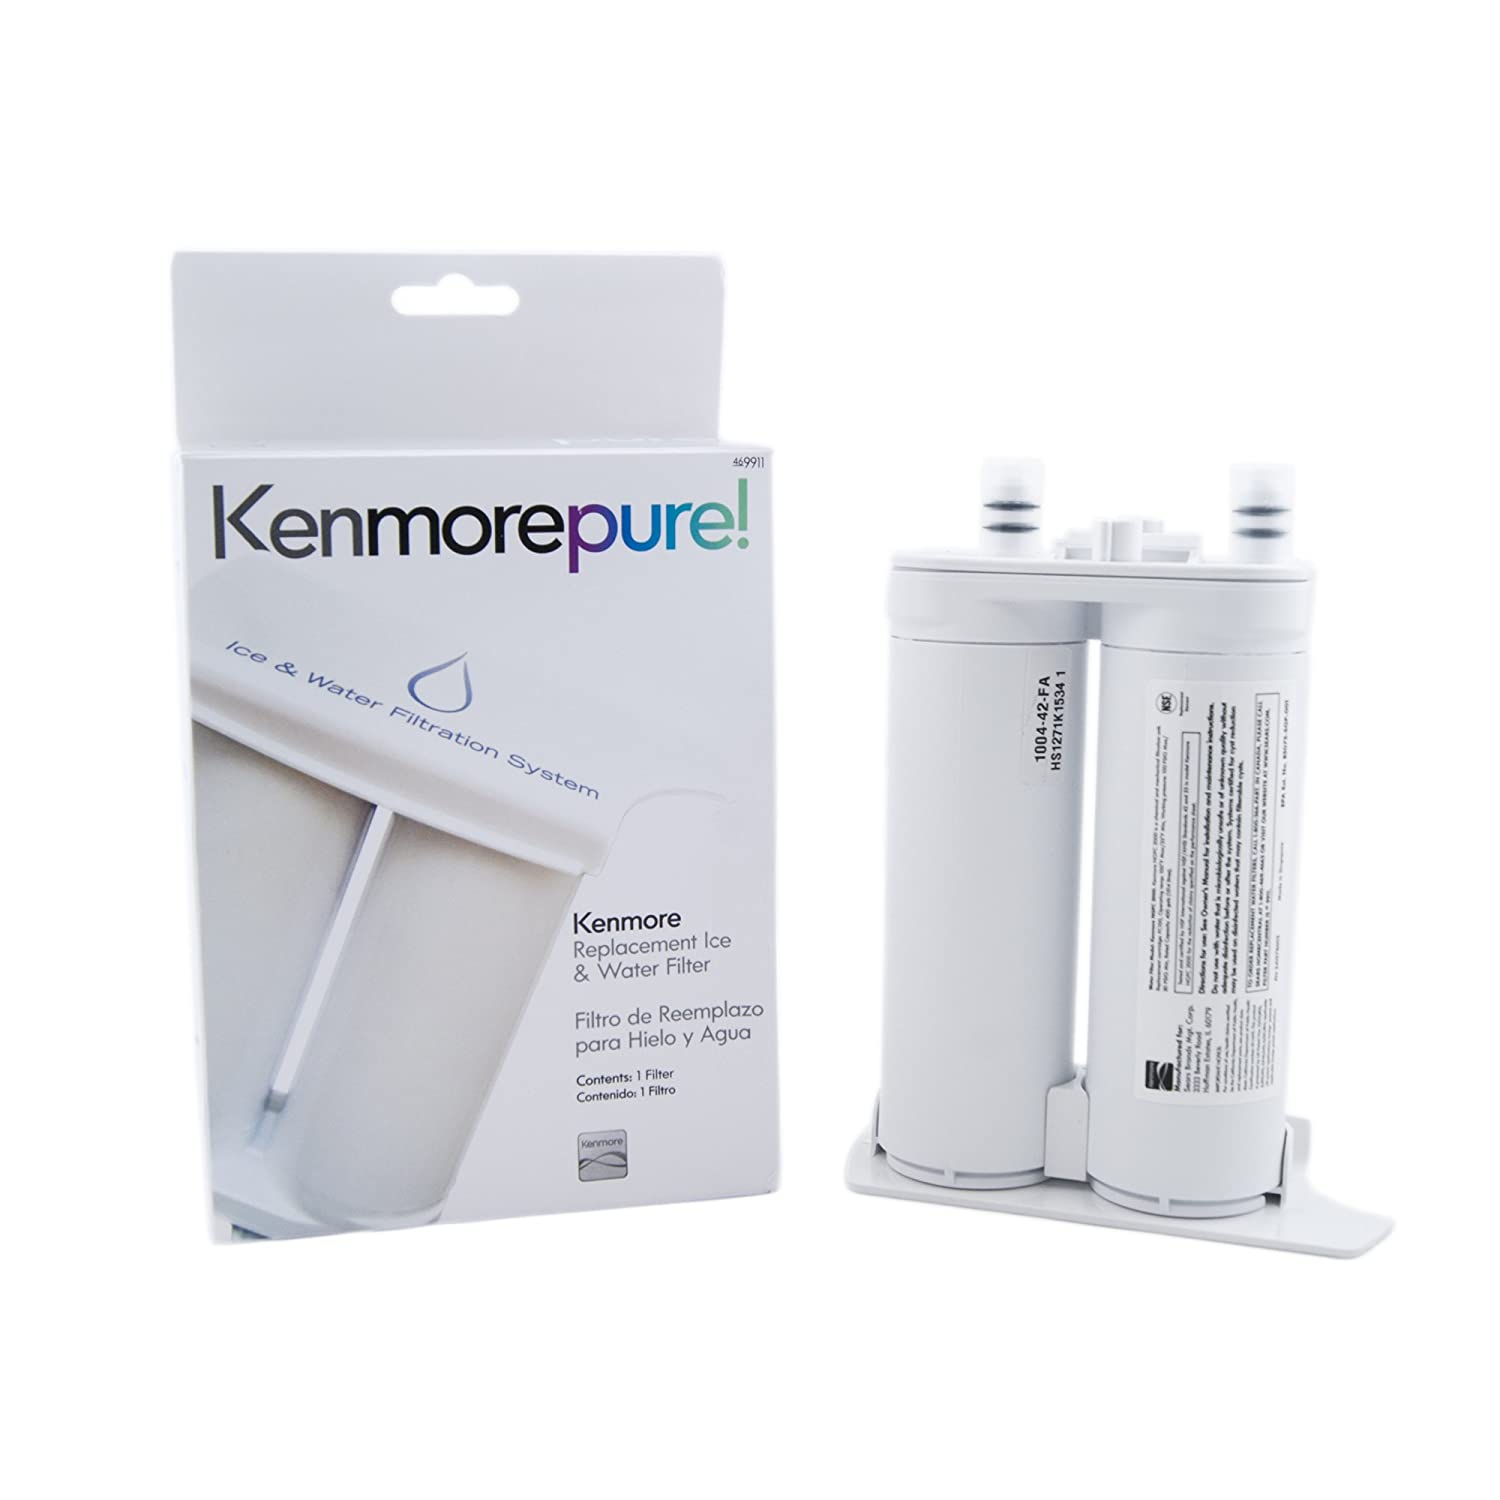 Kenmore 9911 Refrigerator Water Filter, White